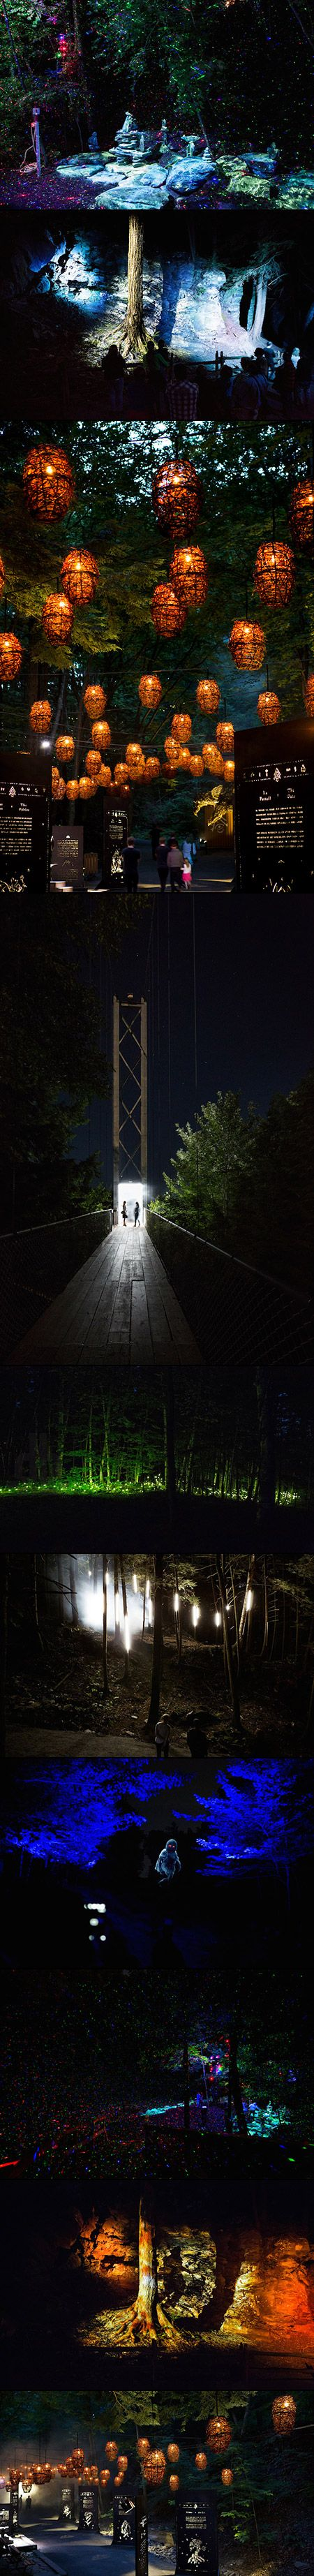 Montreal-based studio Moment Factory has transformed Quebec's Parc de la Gorge de Coaticook into Foresta Lumina, an illuminated nocturnal trail through the enchanted forest. After nightfall from now until mid-October, visitors to the park are invited to take a magical stroll through the woods on an immersive, storybook-like adventure.